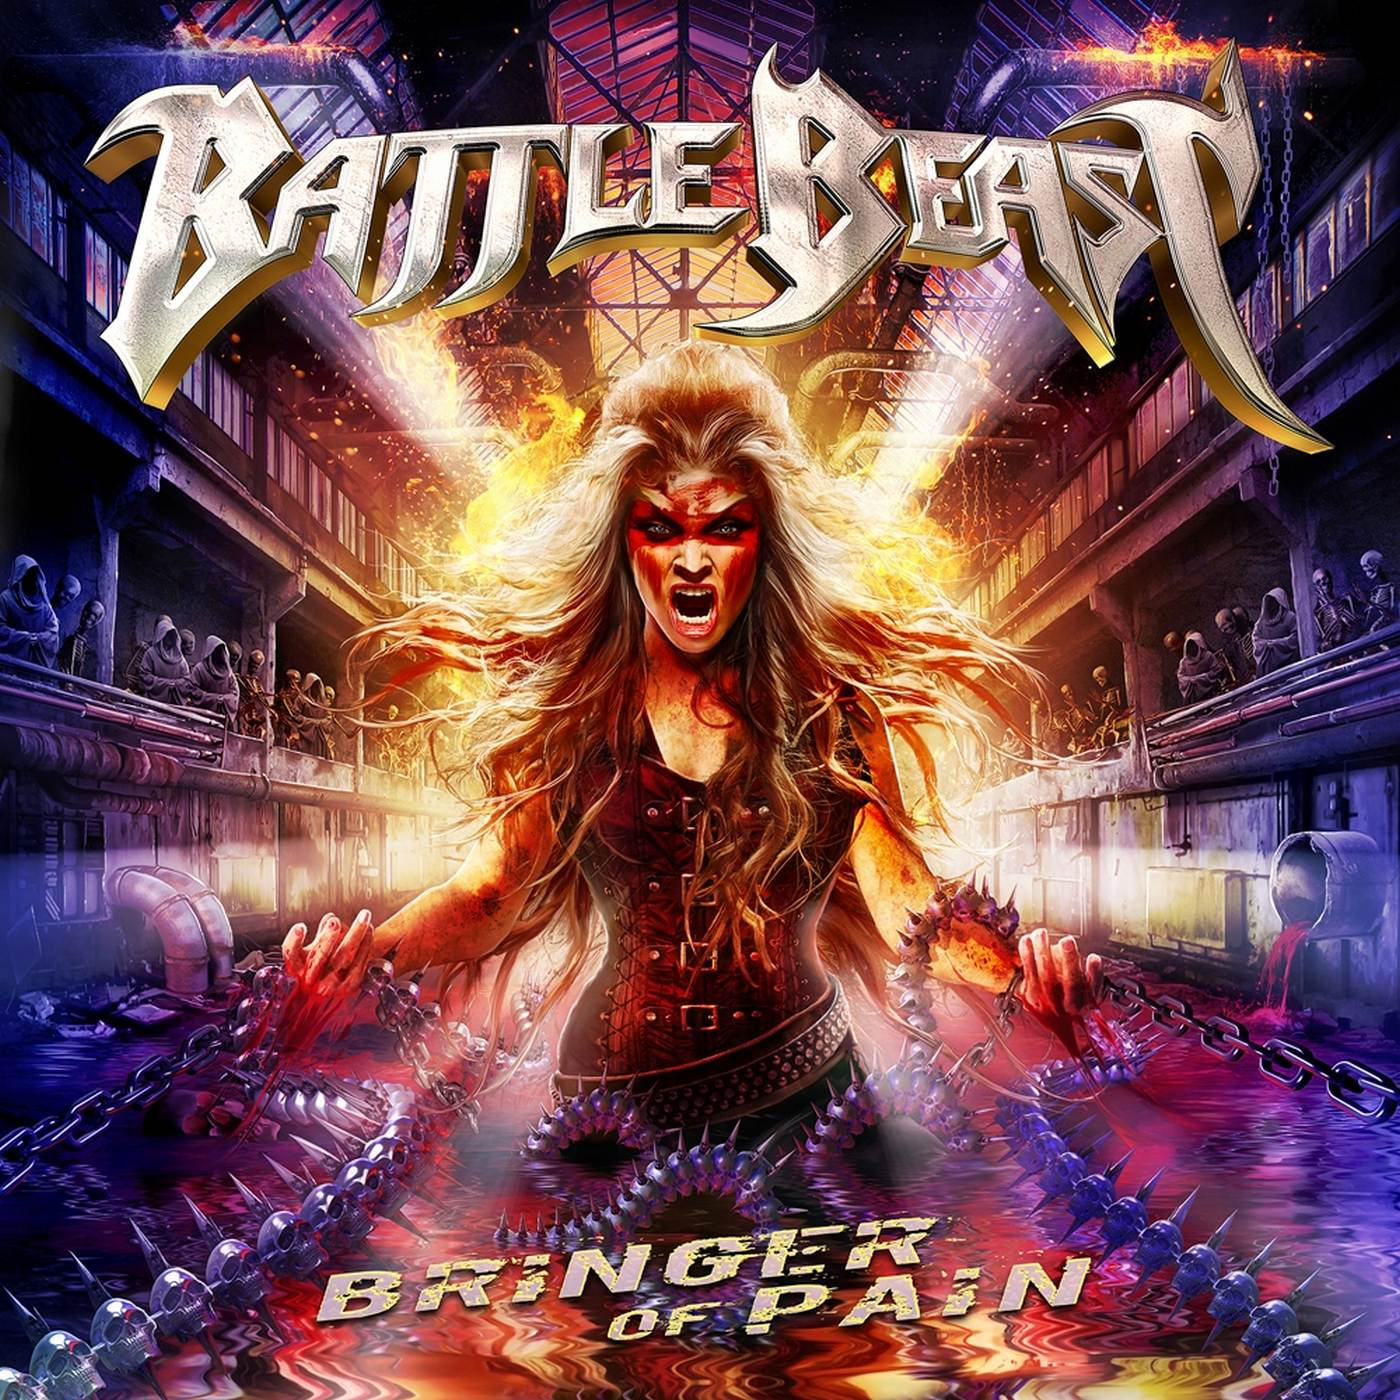 Battle Beast: Bringer Of Pain (2017) Book Cover